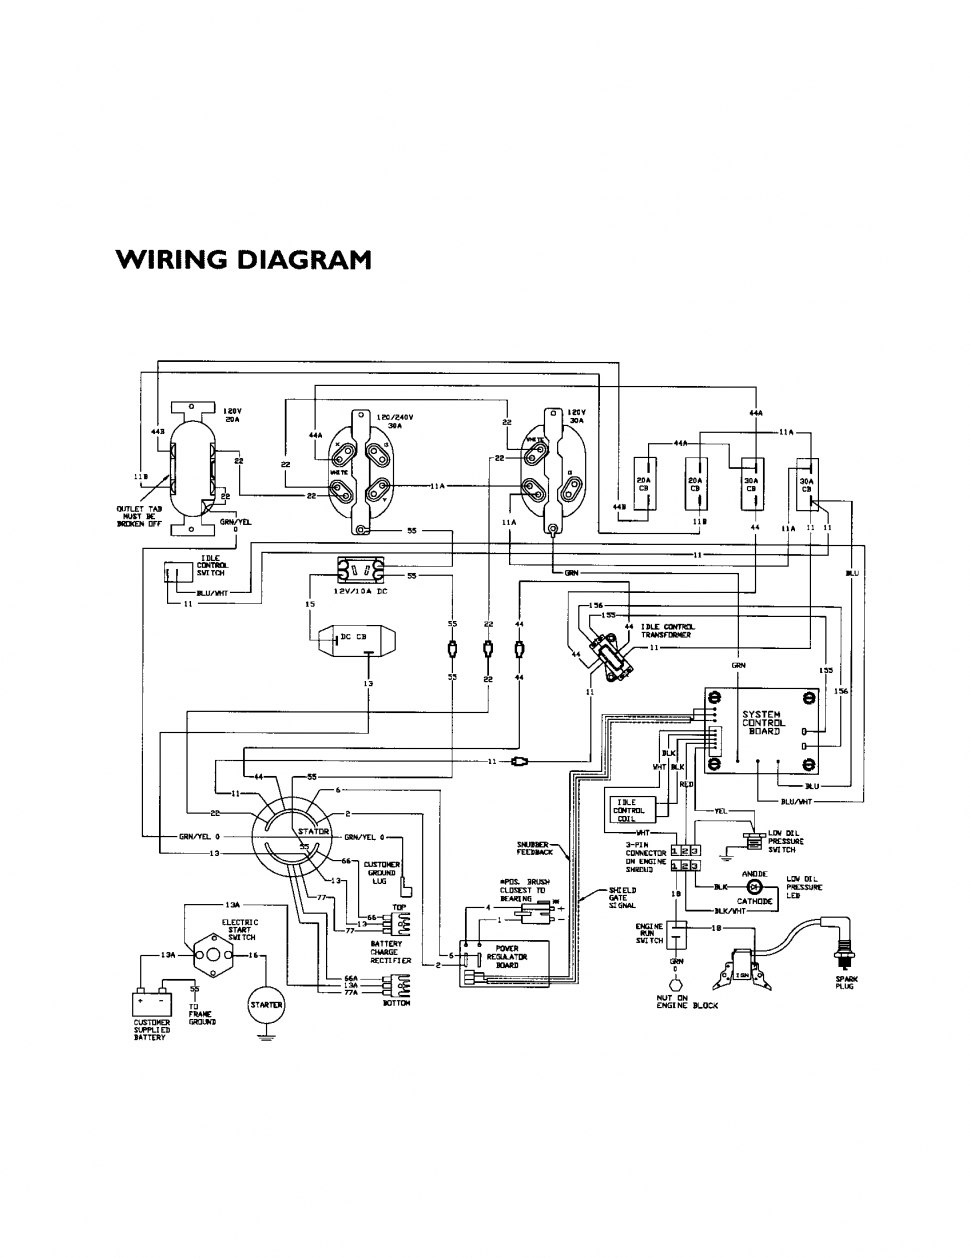 speaker selector switch wiring diagram gallery wiring diagram s le Jimmy Page Wiring Diagram eaton transfer switch wiring diagram simple electrical wiring diagram stunning eaton transfer switches ch48gen3060r 64